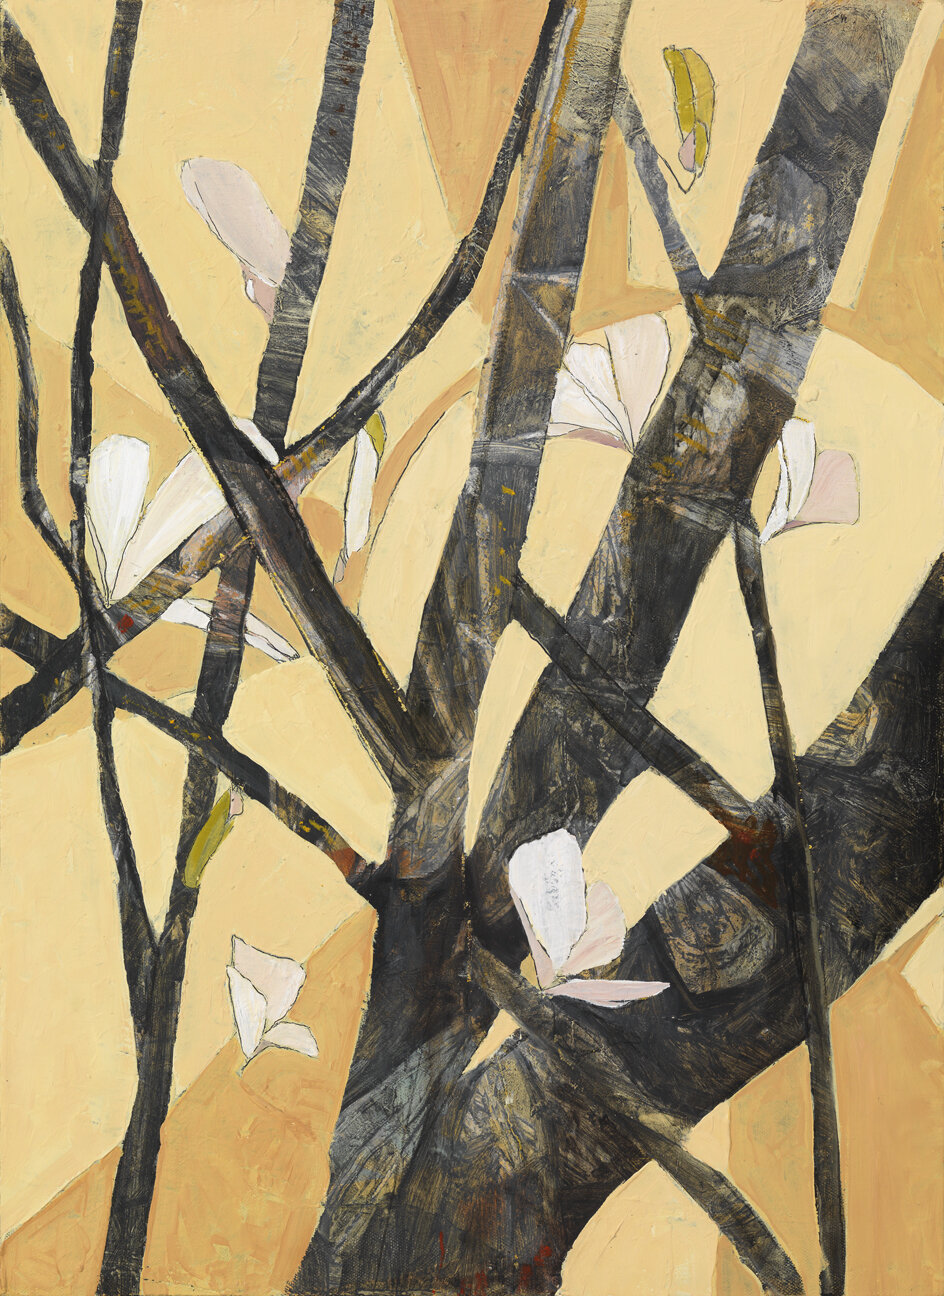 Beacon Street, Branches,  2015 Oil on canvas 21 5/8 x 16 inches